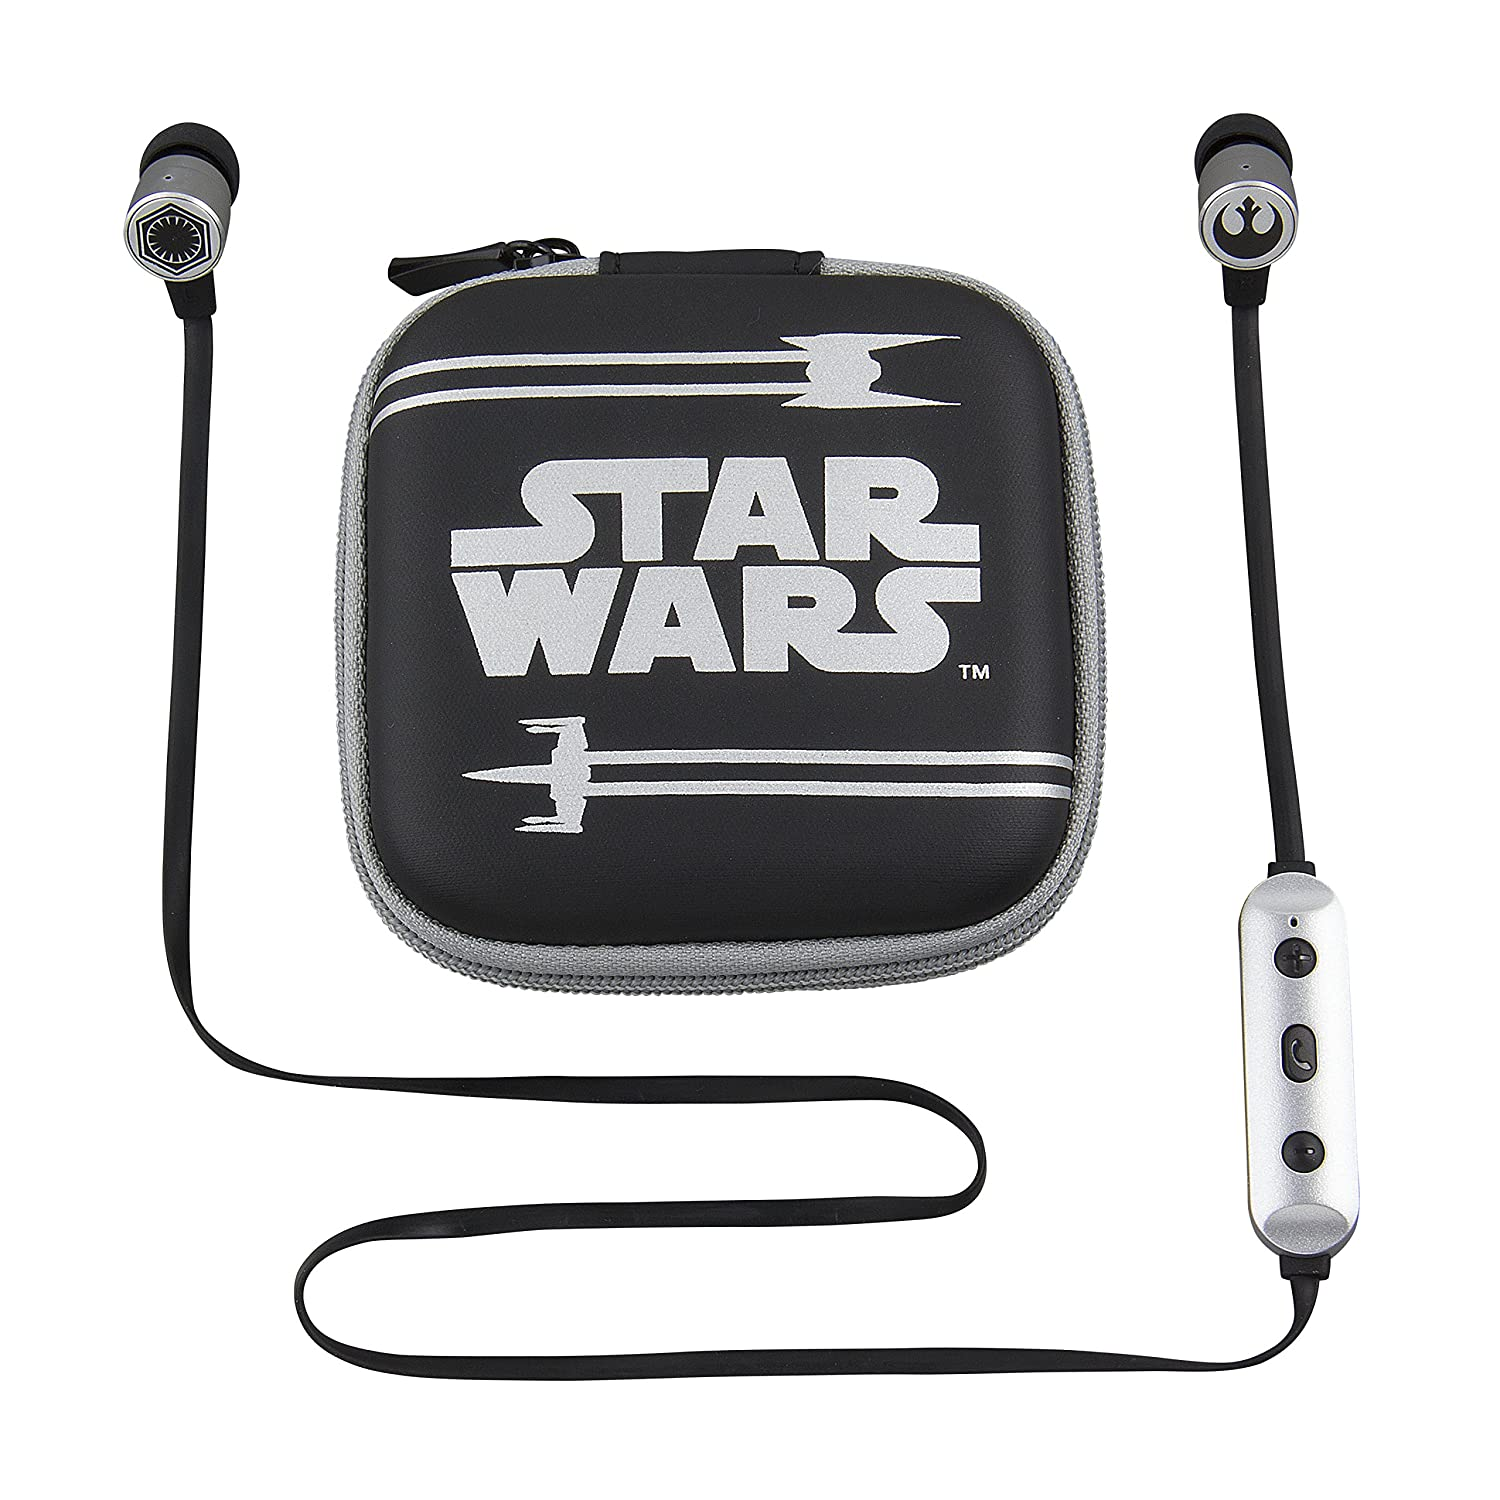 Star Wars Bluetooth Wireless Earbuds and Travel Case with Hands Free Calling and Adjustable Volume Control